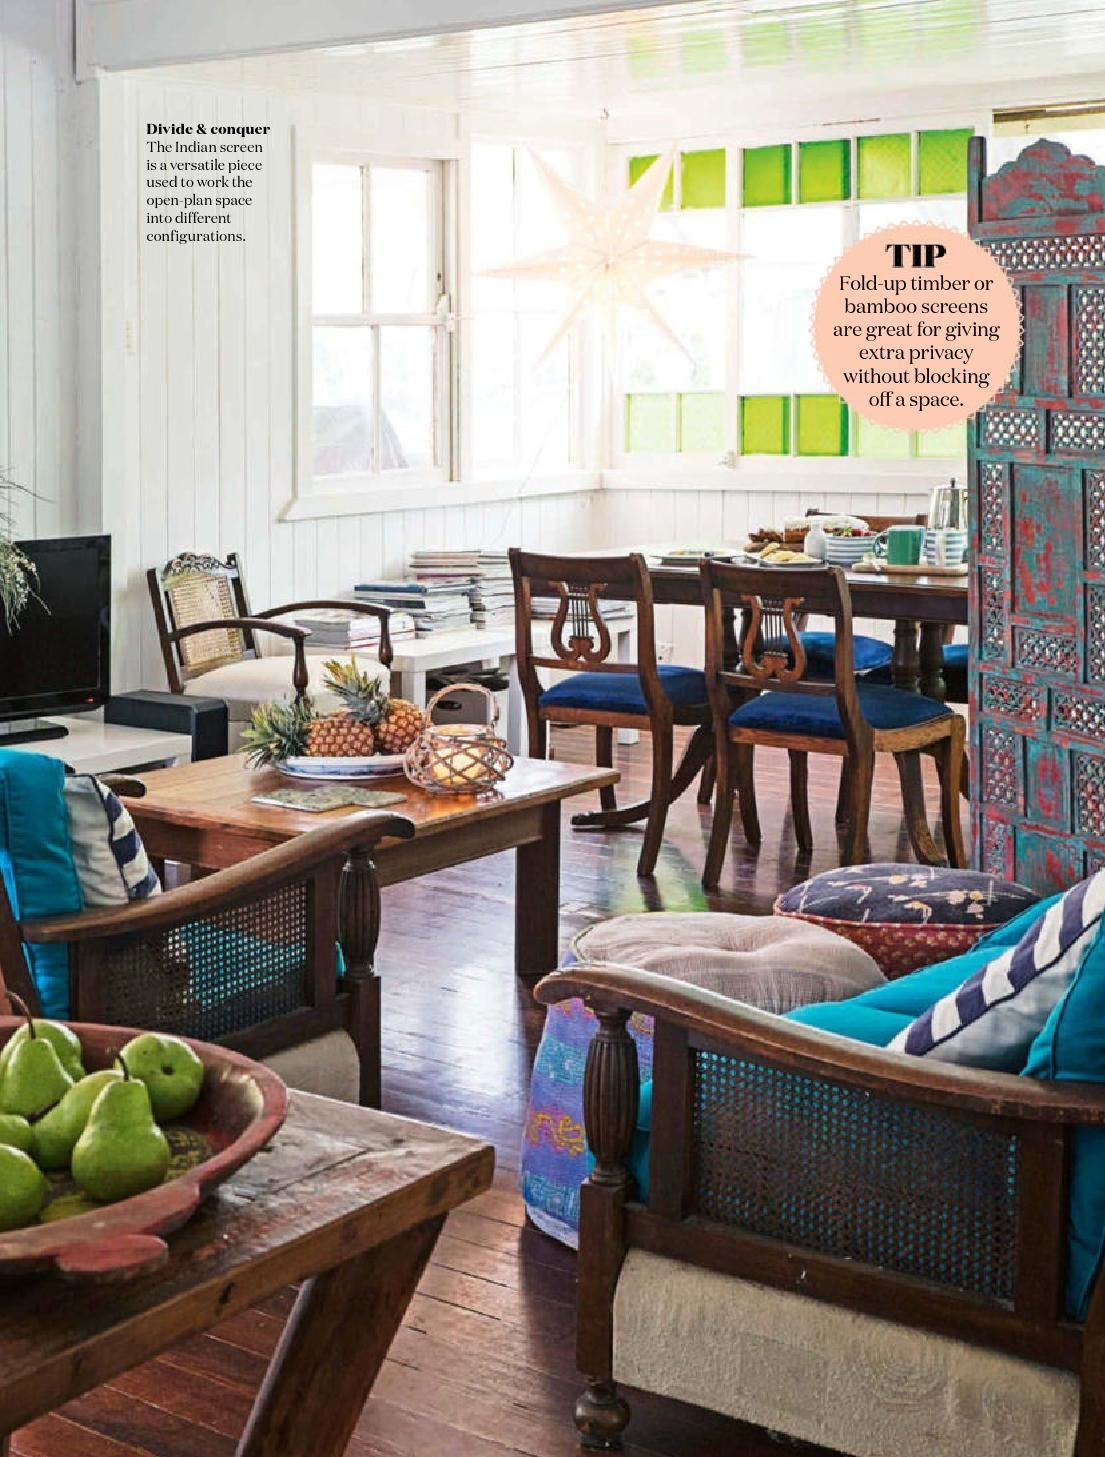 ClippedOnIssuu from Homes 2015 03 ClippedOnIssuu from